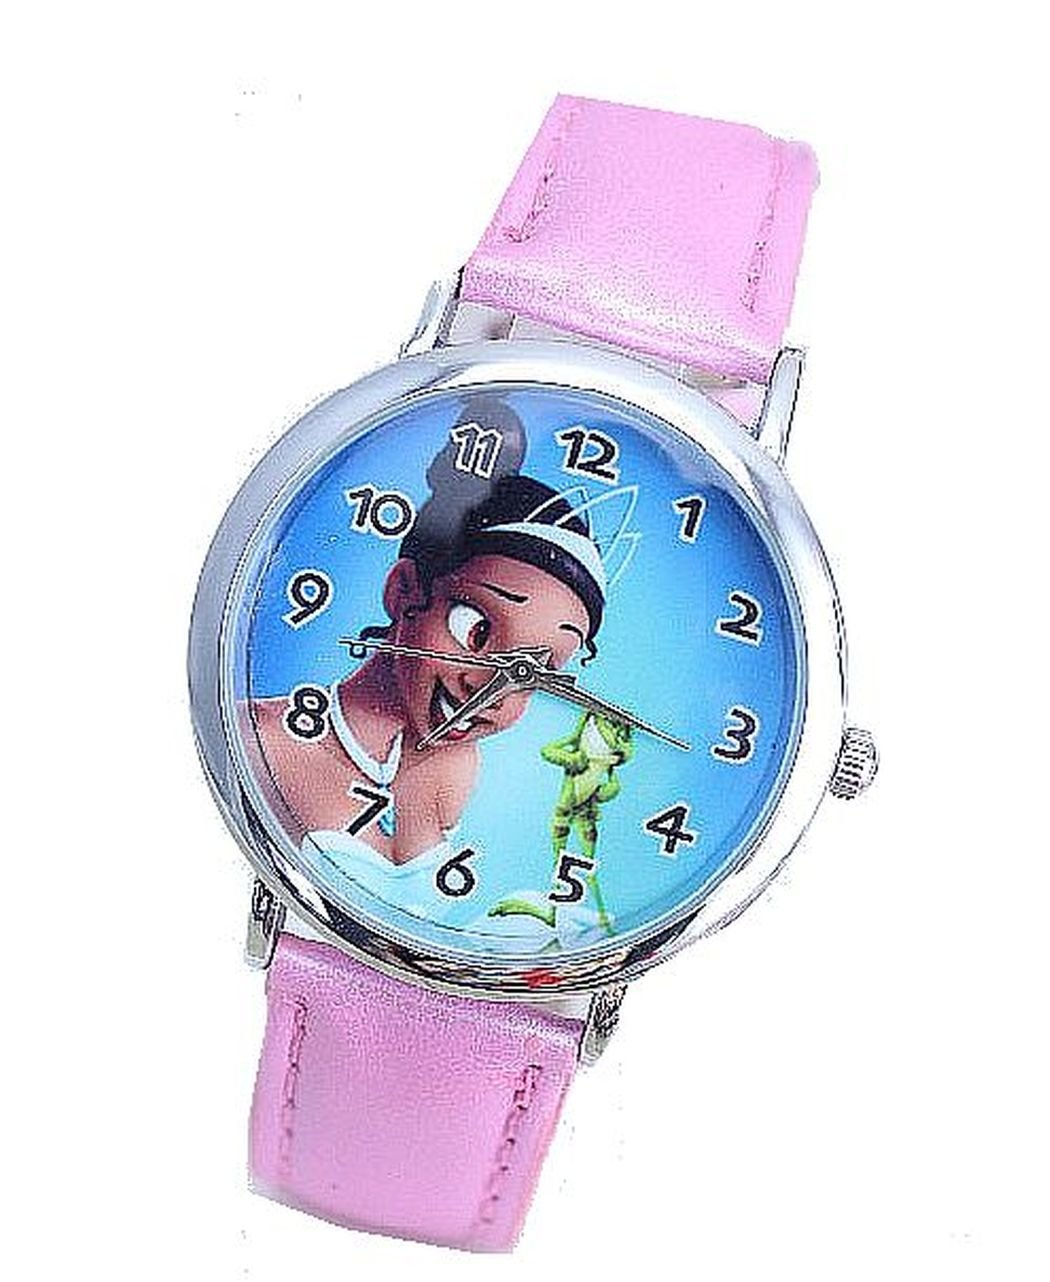 Disneys Princess and the Frog '' Tiana '' on a Girls Pink Leather Wrist Watch